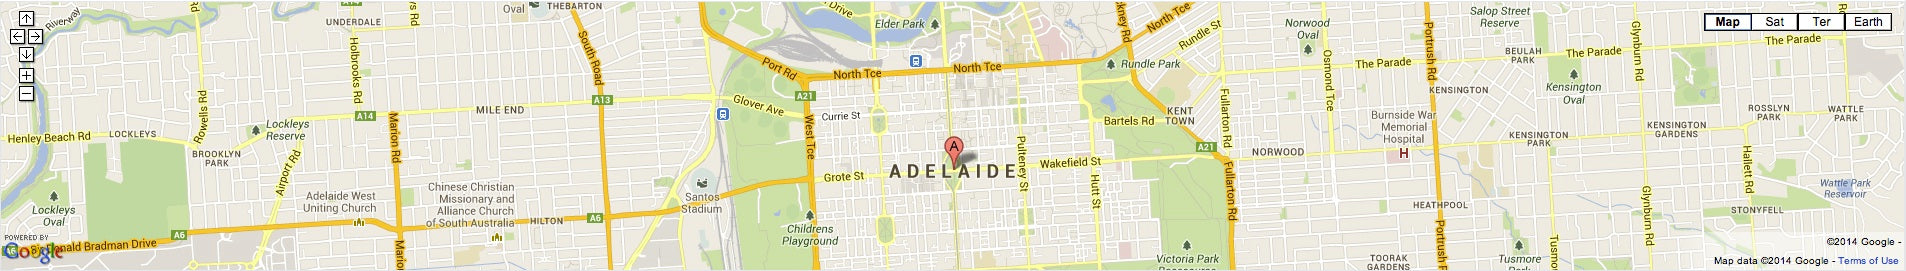 Adelaide information security